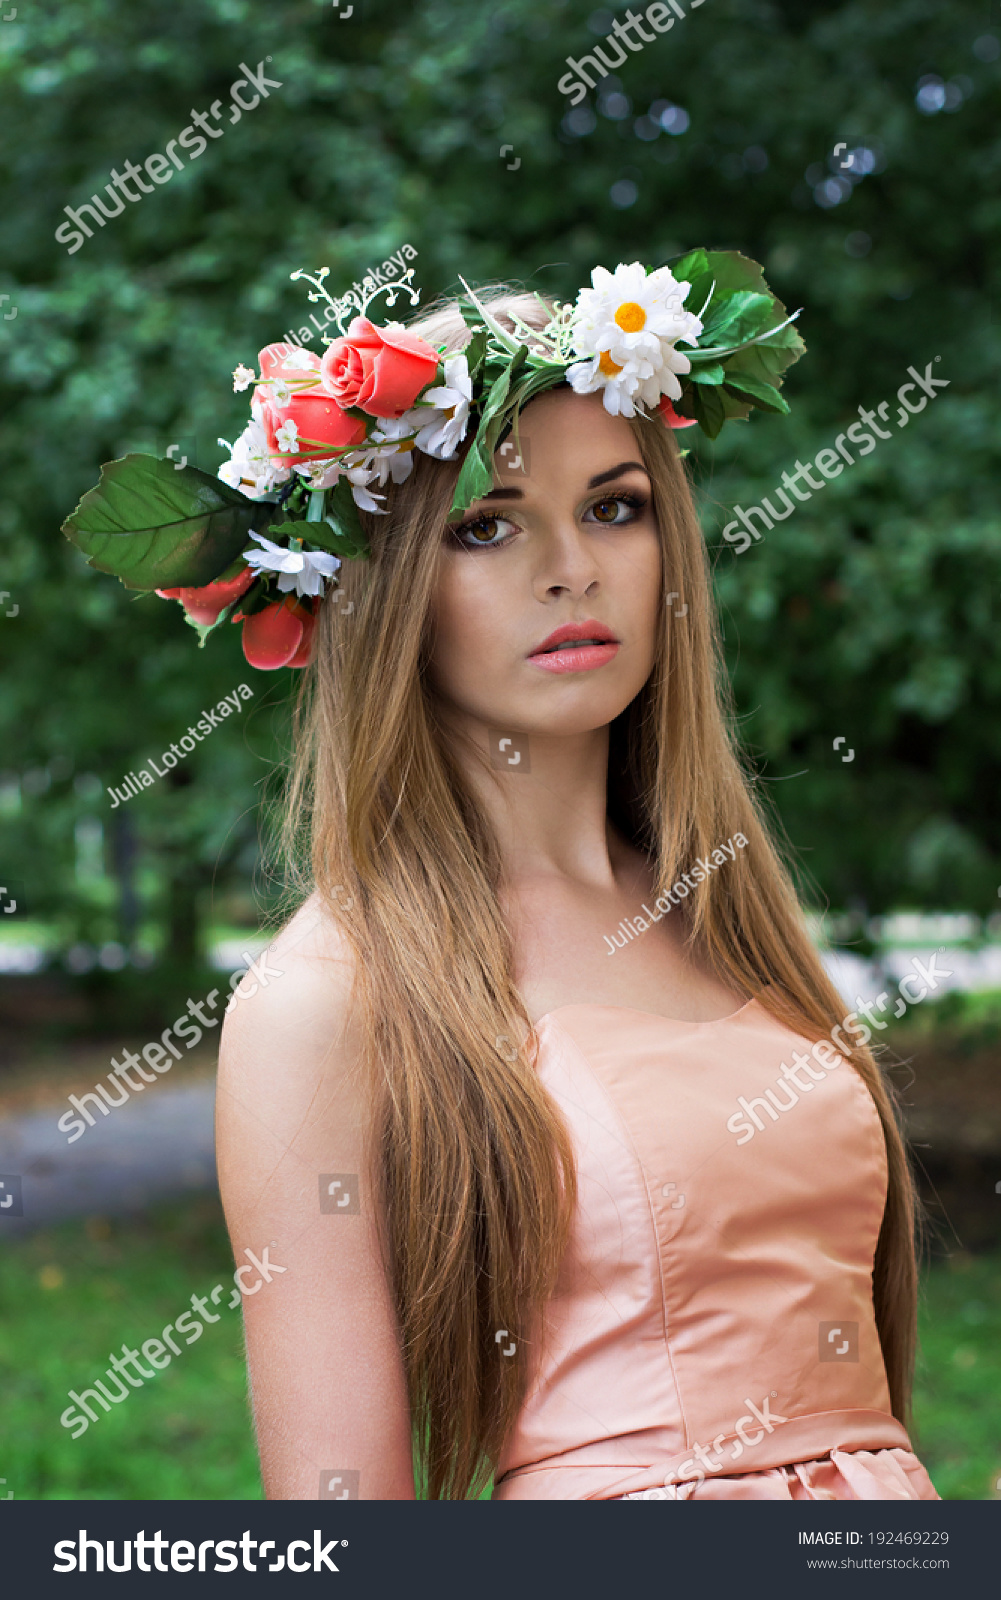 Beautiful Young Blonde Woman Flower Wreath Stock Photo (Edit Now ...